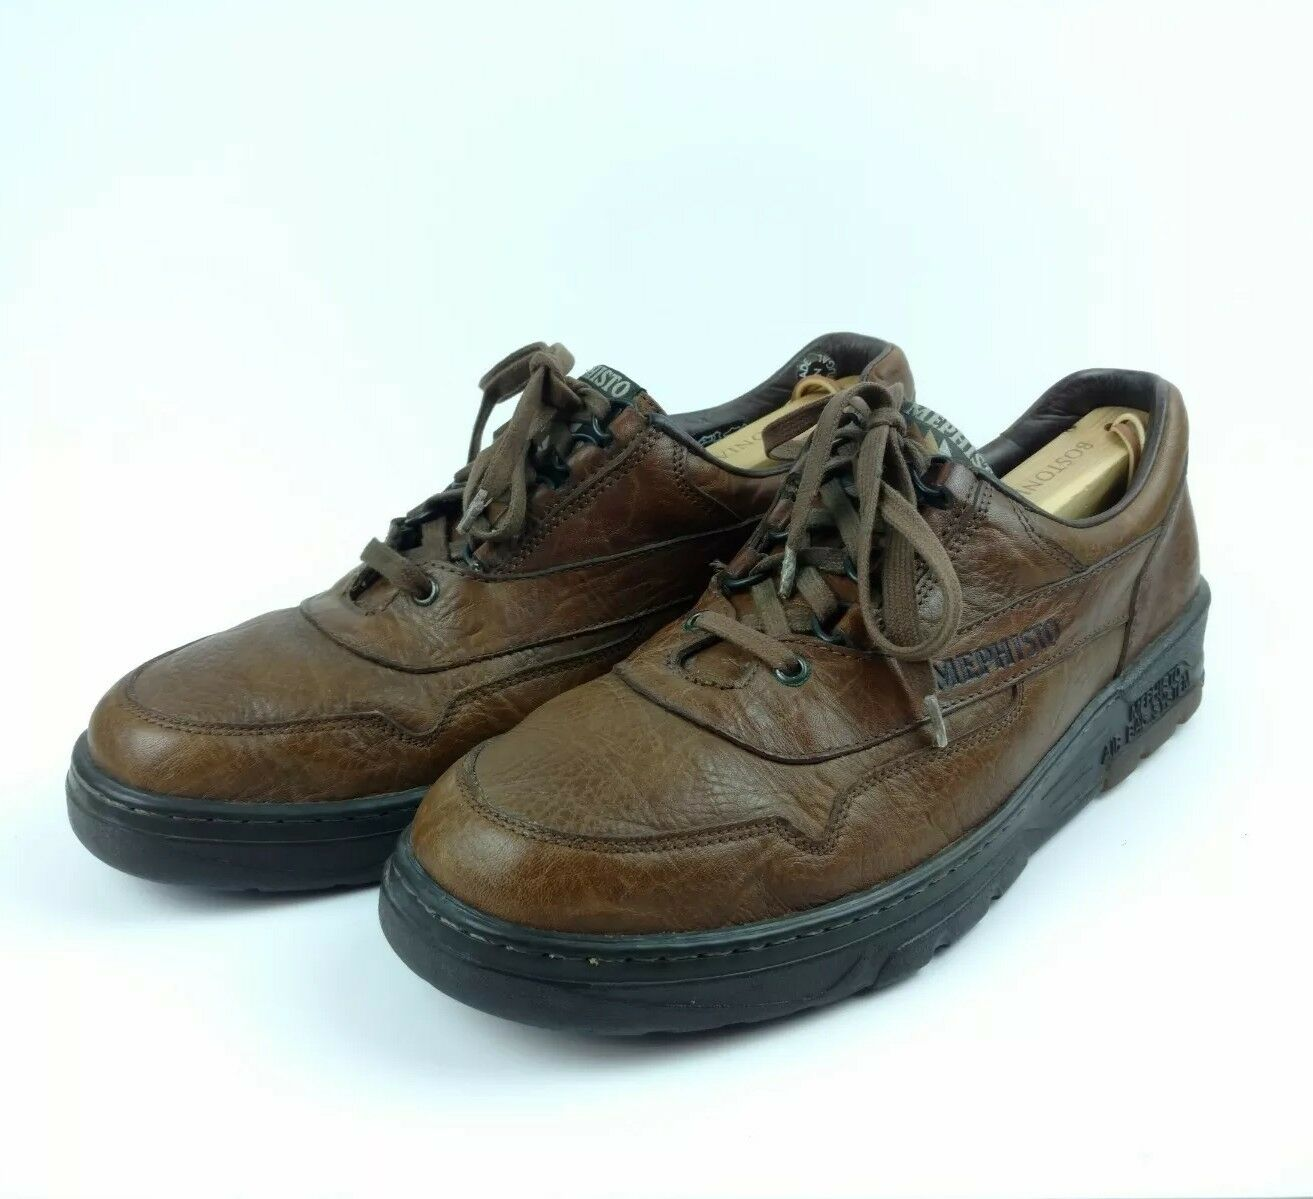 Mephisto Runoff Air Jet 6.5 US Air Bag System Brown Leather Caoutchouc